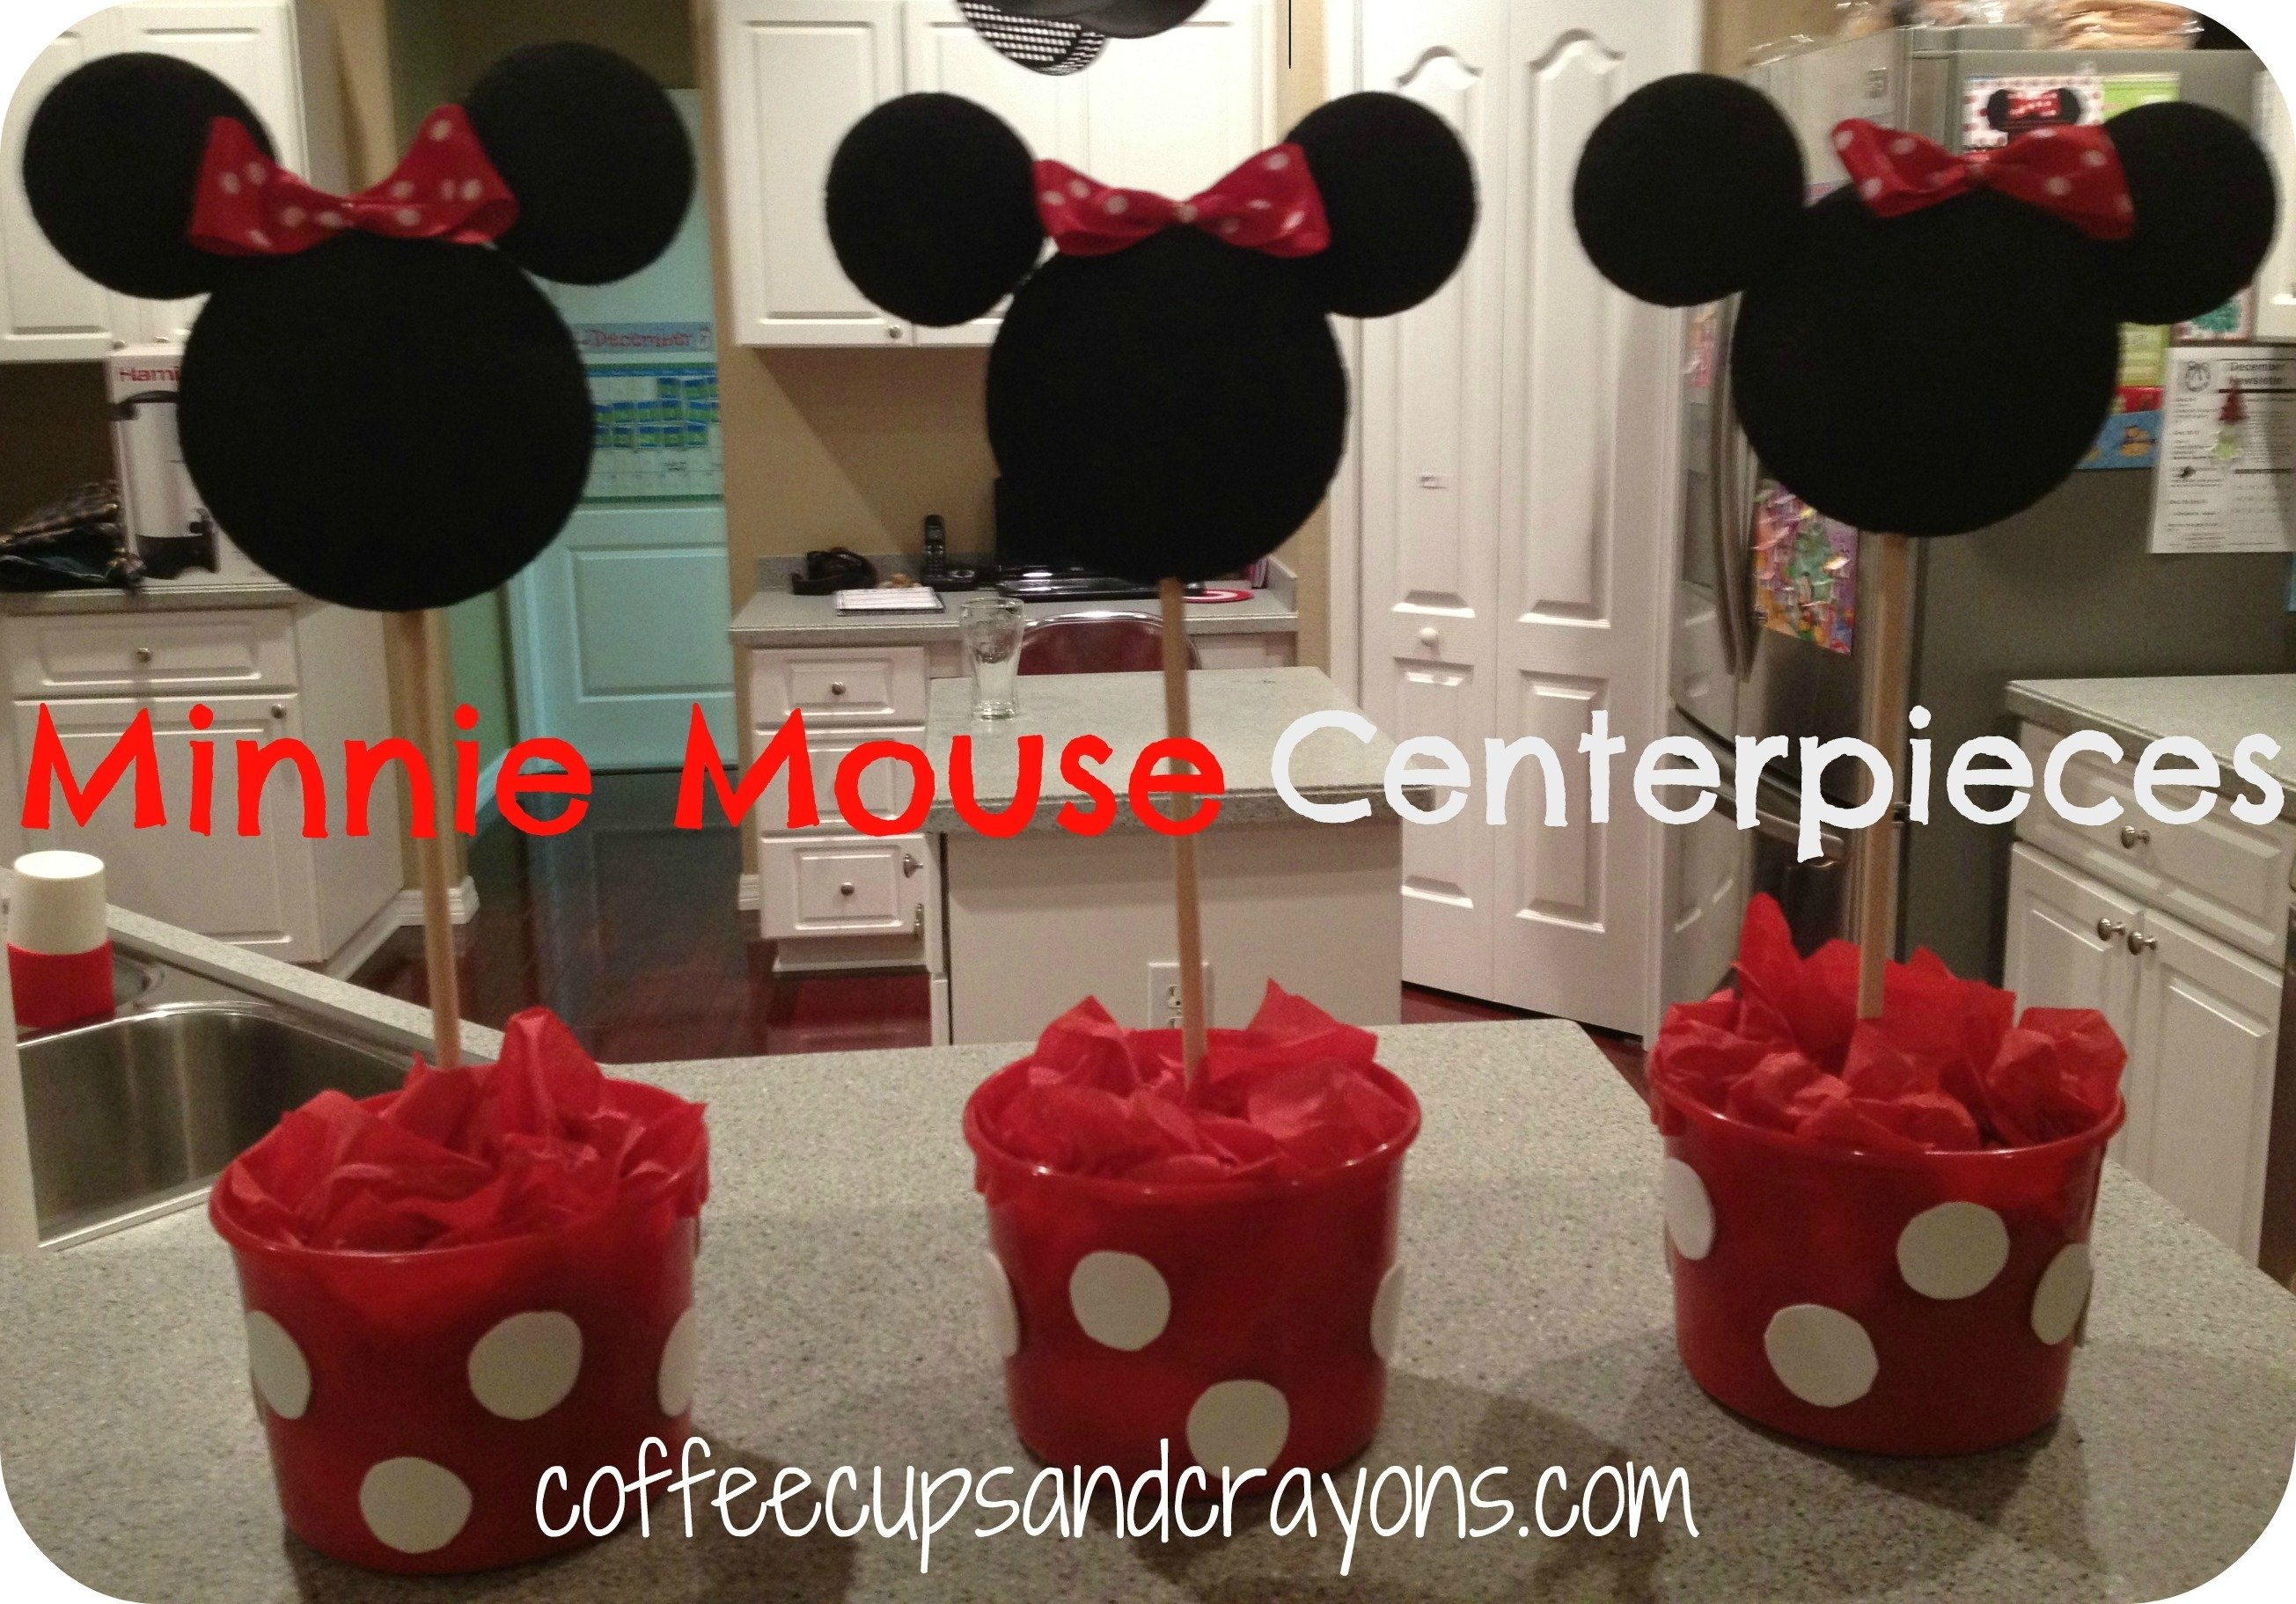 10 Stylish Red Minnie Mouse Party Ideas to make easy minnie mouse centerpieces